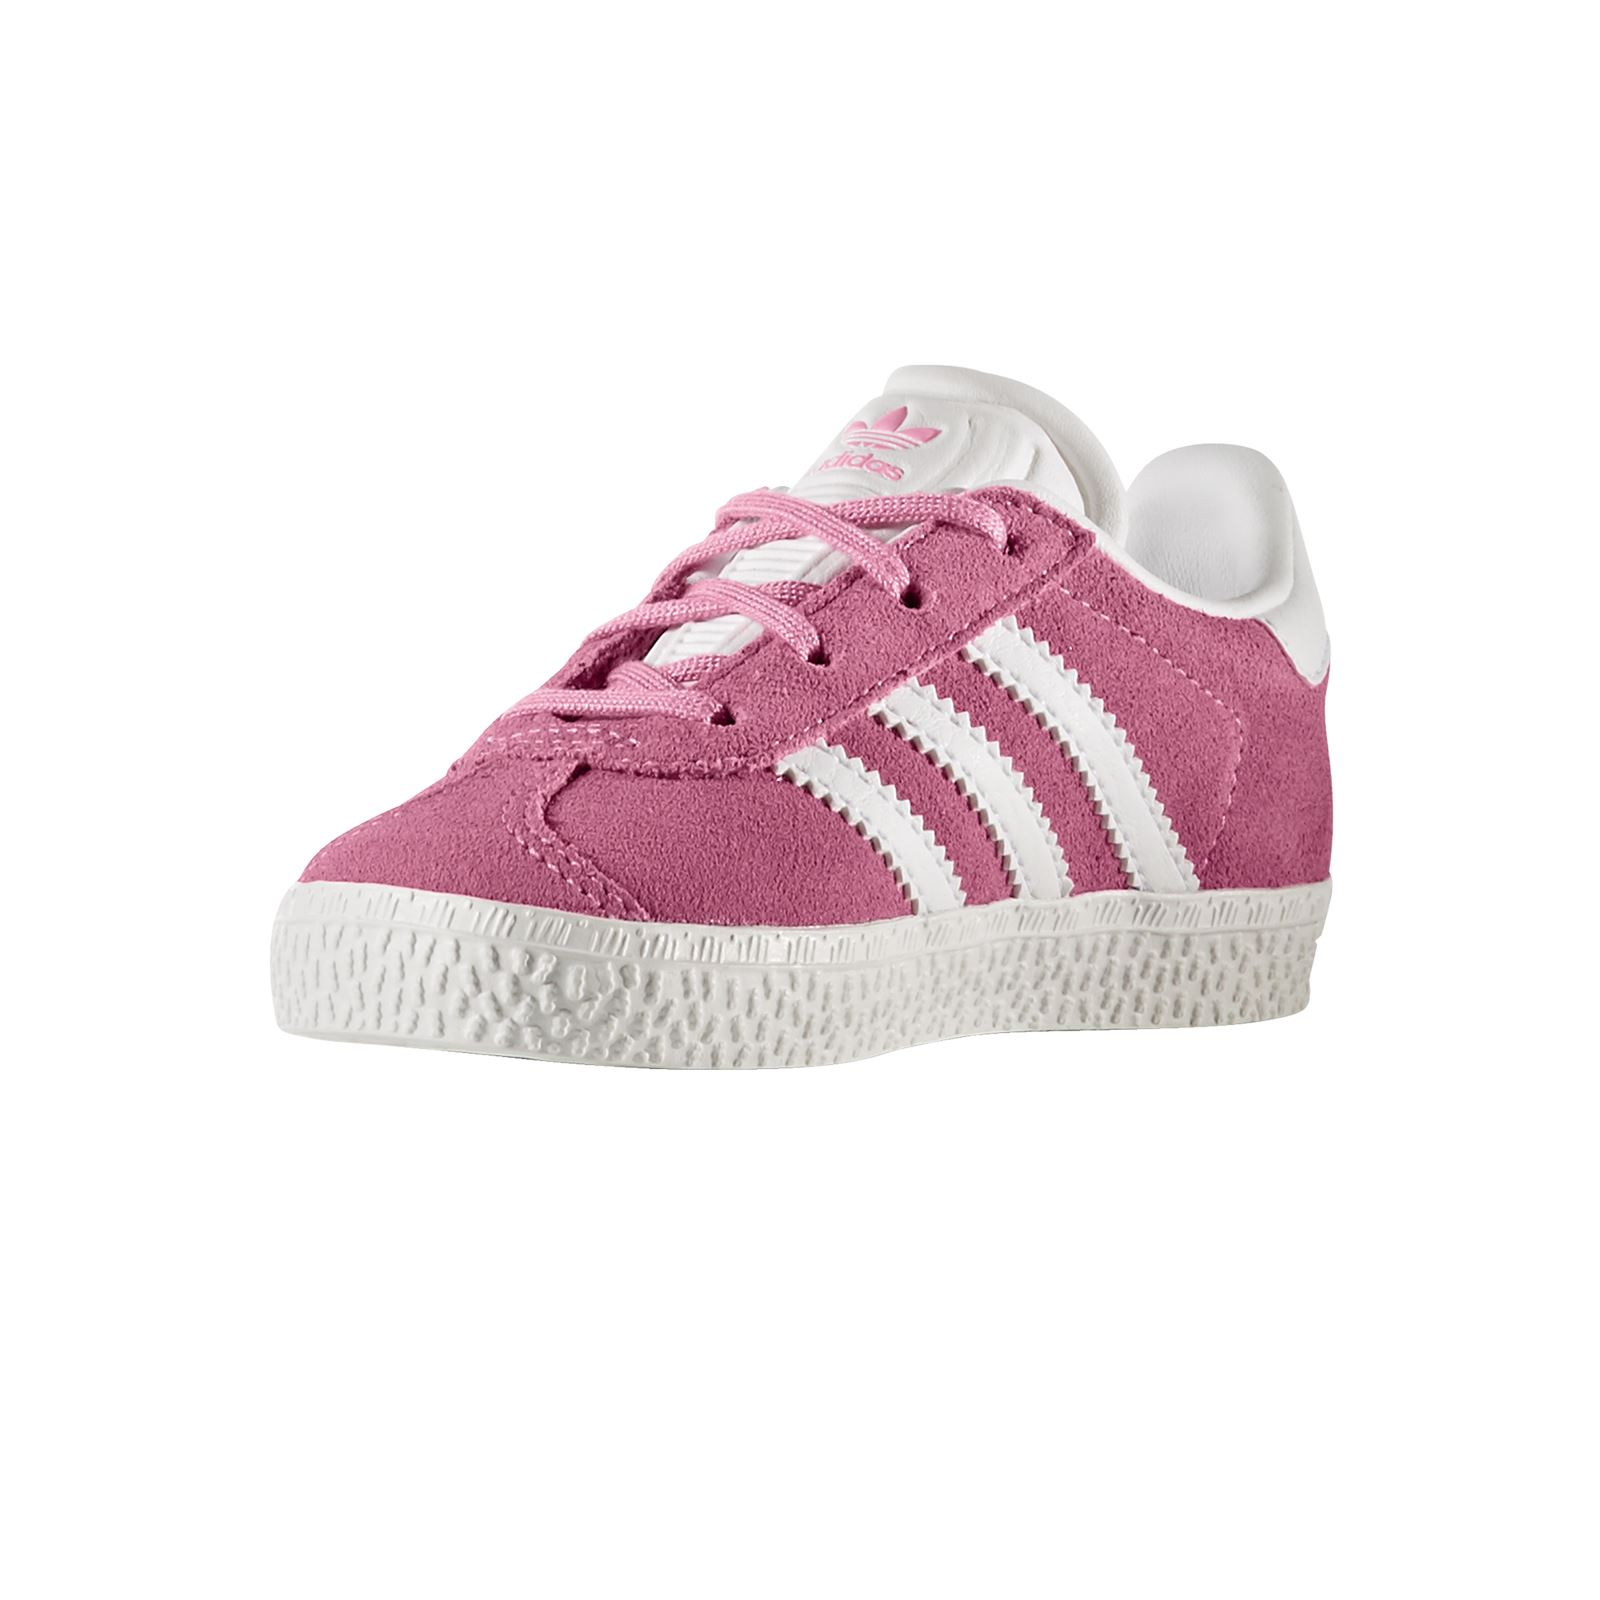 adidas originals gazelle zapatillas de cuero rosa. Black Bedroom Furniture Sets. Home Design Ideas